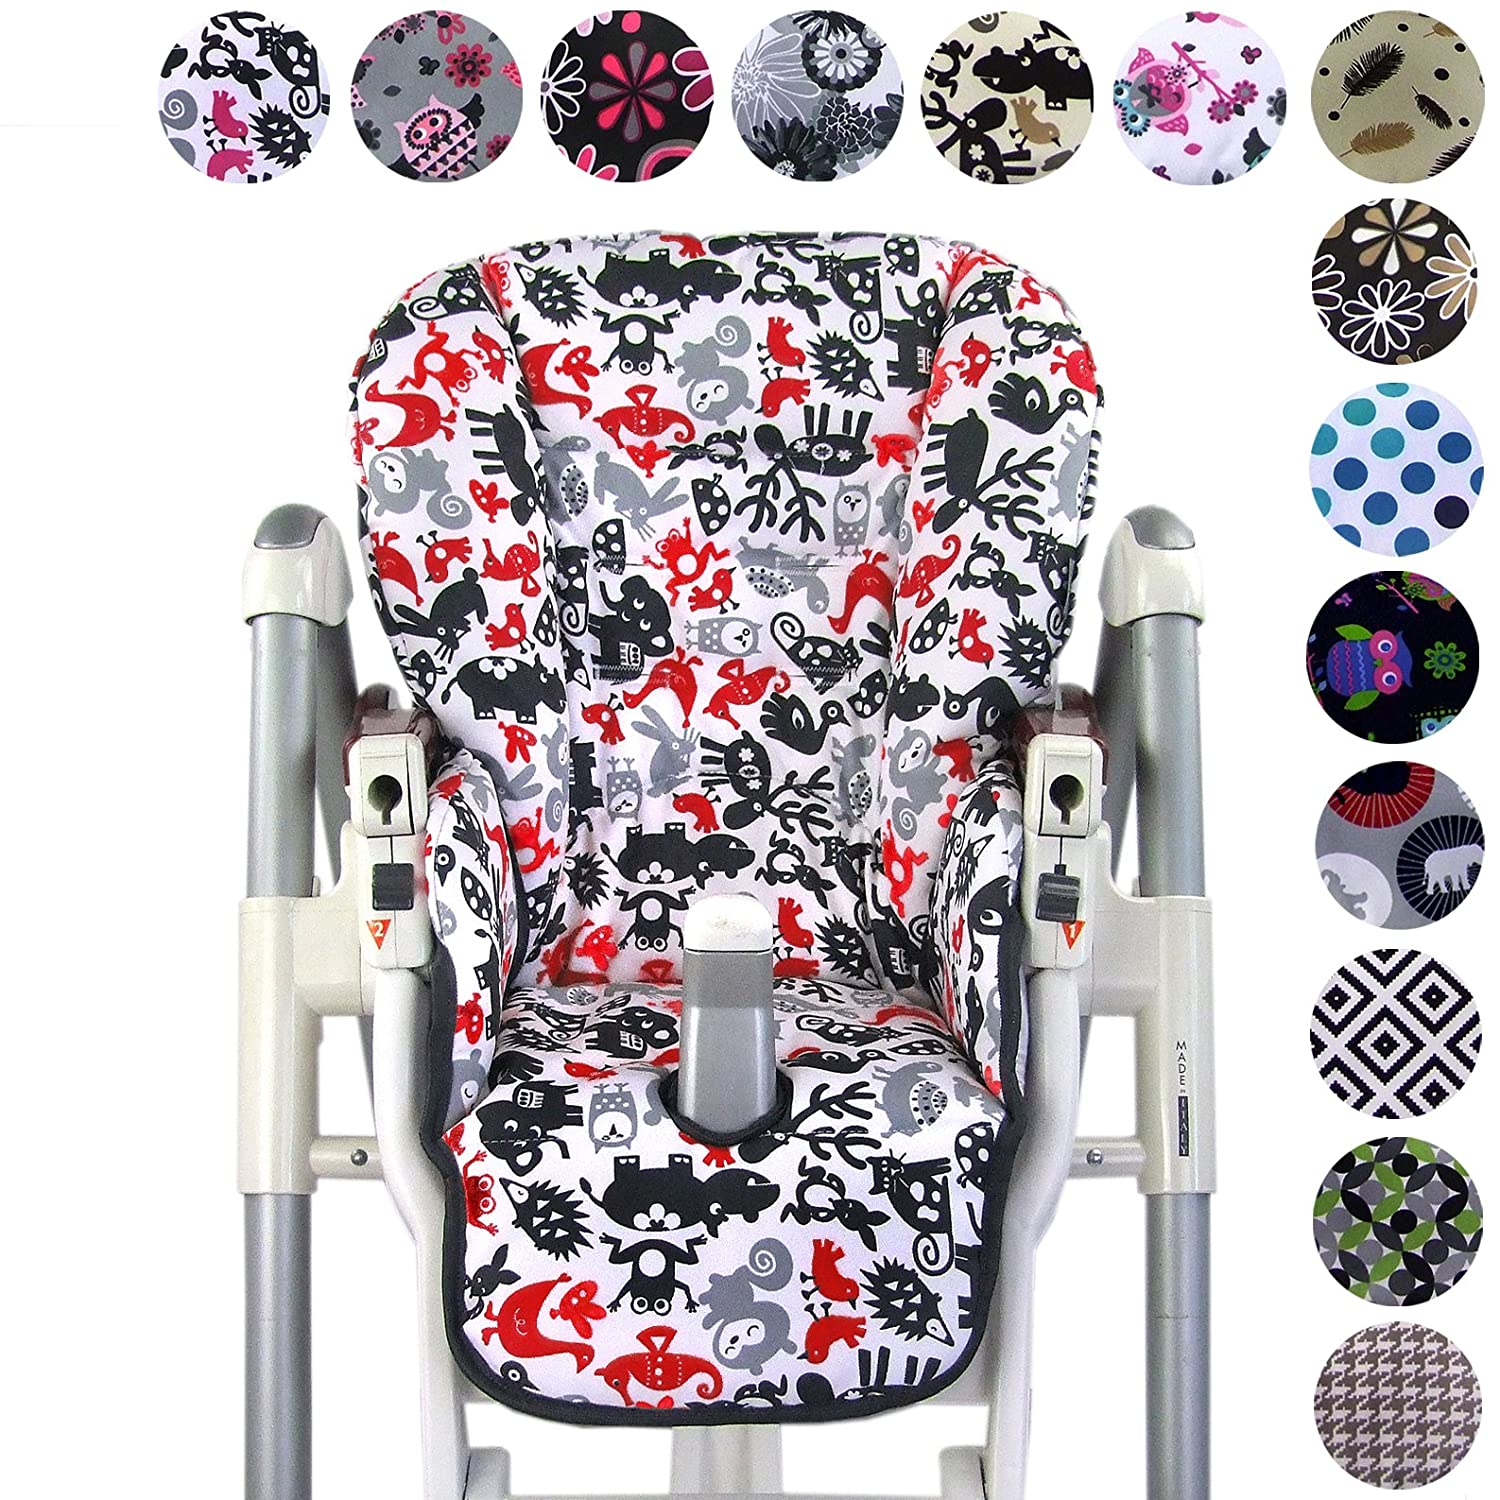 Tremendous Bambiniwelt Replacement Seat Cushion Cover For Highchair Peg Caraccident5 Cool Chair Designs And Ideas Caraccident5Info